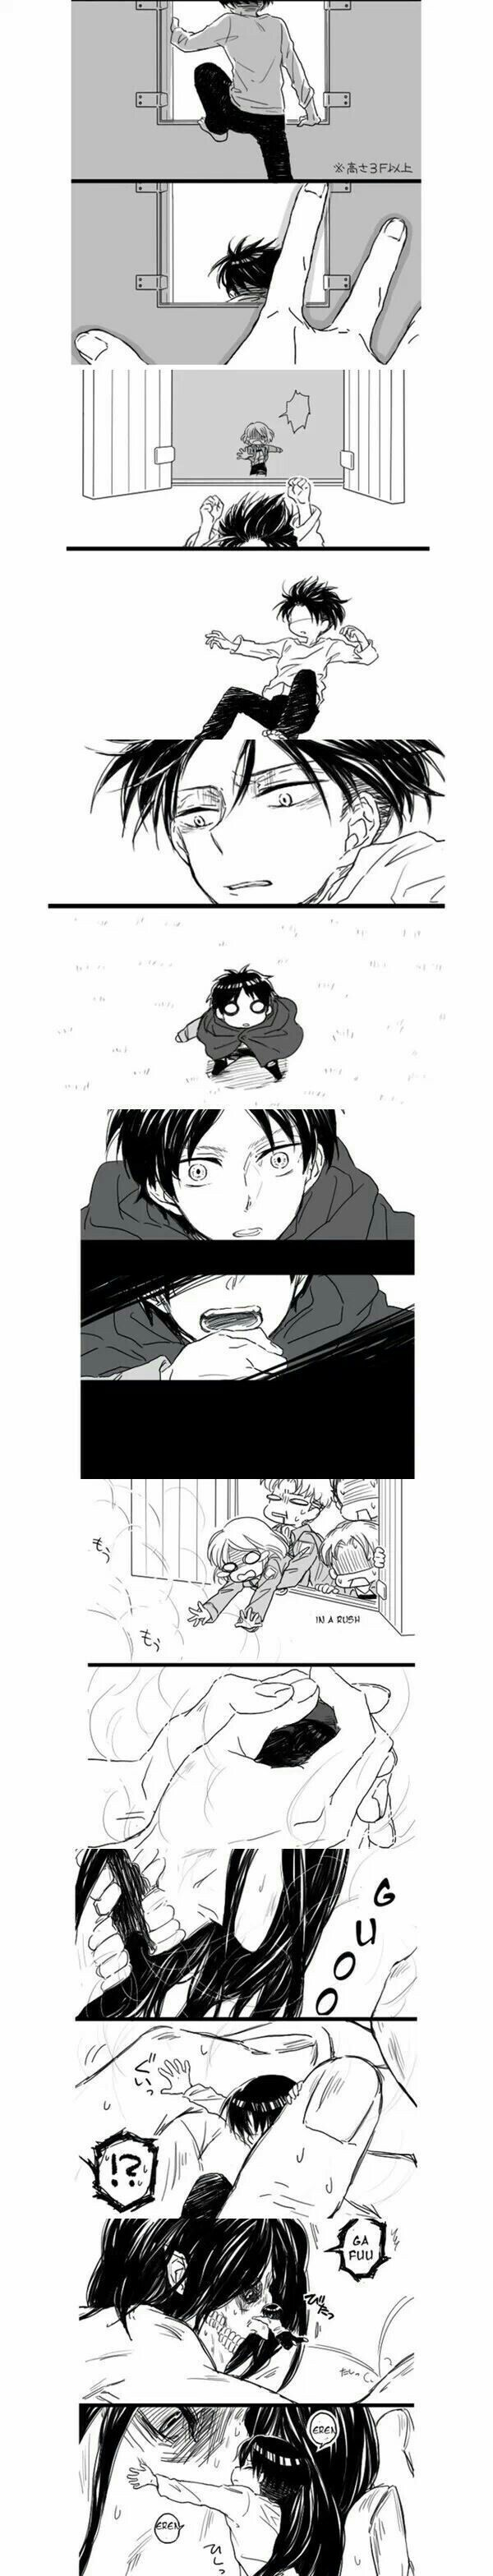 If titans could purr, that's what Eren would be doing when Levi hugged him <<< Awww... This comment is too precious ♥